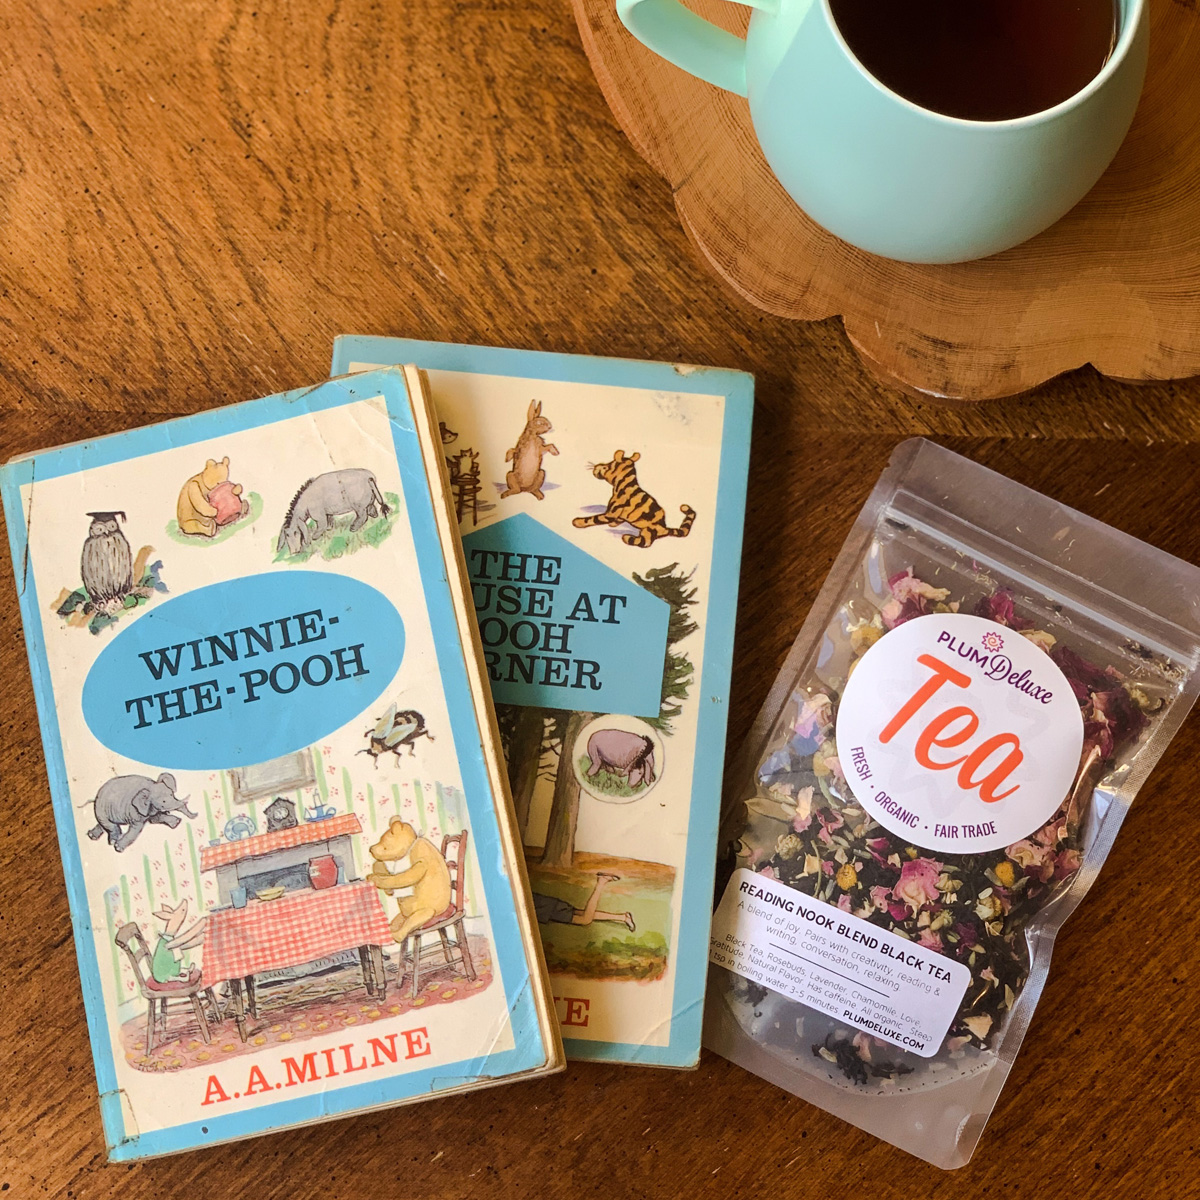 Overhead view of two Winnie the Pooh books, a bag of loose leaf tea, and a blue mug of tea arranged on a wooden table.